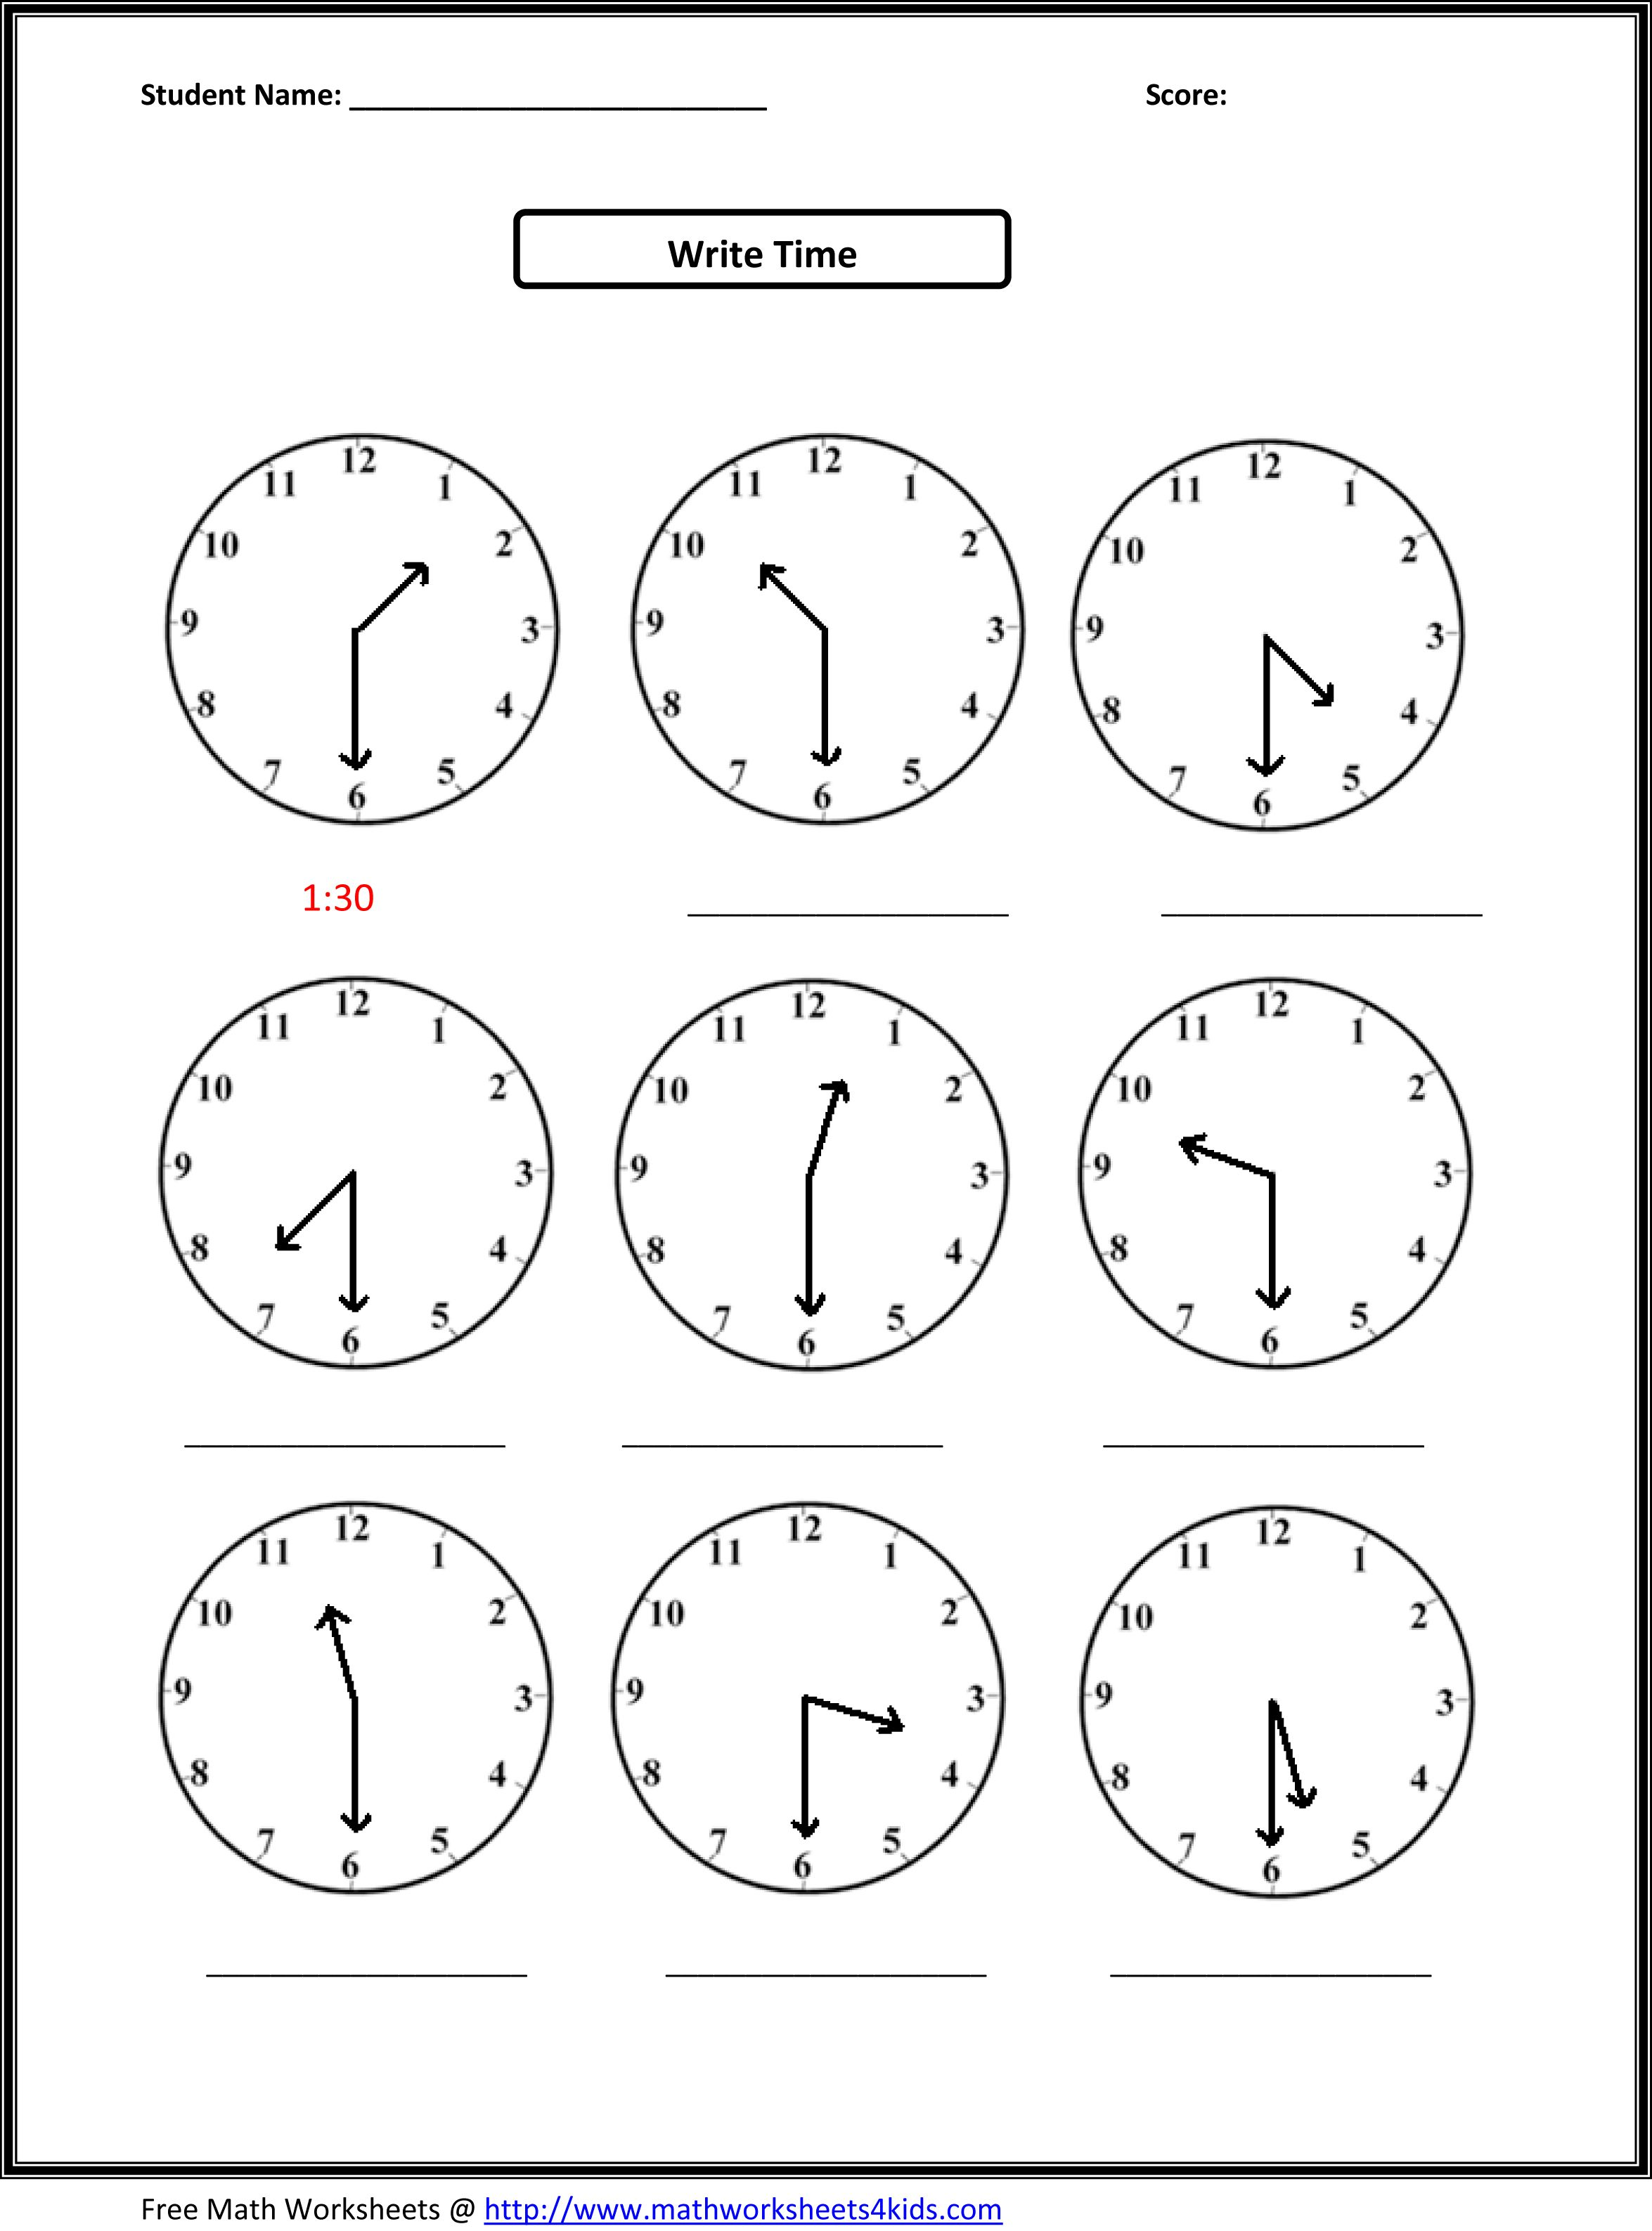 Proatmealus  Wonderful Worksheet On Time For Grade   Reocurent With Remarkable Free Printable Telling Time Worksheets Nd Grade  Reocurent With Astounding W Personal Allowances Worksheet Also Rhyming Worksheet In Addition Volume Of Sphere Worksheet And Ions And Isotopes Worksheet As Well As Holt Mcdougal Algebra  Worksheet Answers Additionally Place Value Worksheets St Grade From Reocurentcom With Proatmealus  Remarkable Worksheet On Time For Grade   Reocurent With Astounding Free Printable Telling Time Worksheets Nd Grade  Reocurent And Wonderful W Personal Allowances Worksheet Also Rhyming Worksheet In Addition Volume Of Sphere Worksheet From Reocurentcom